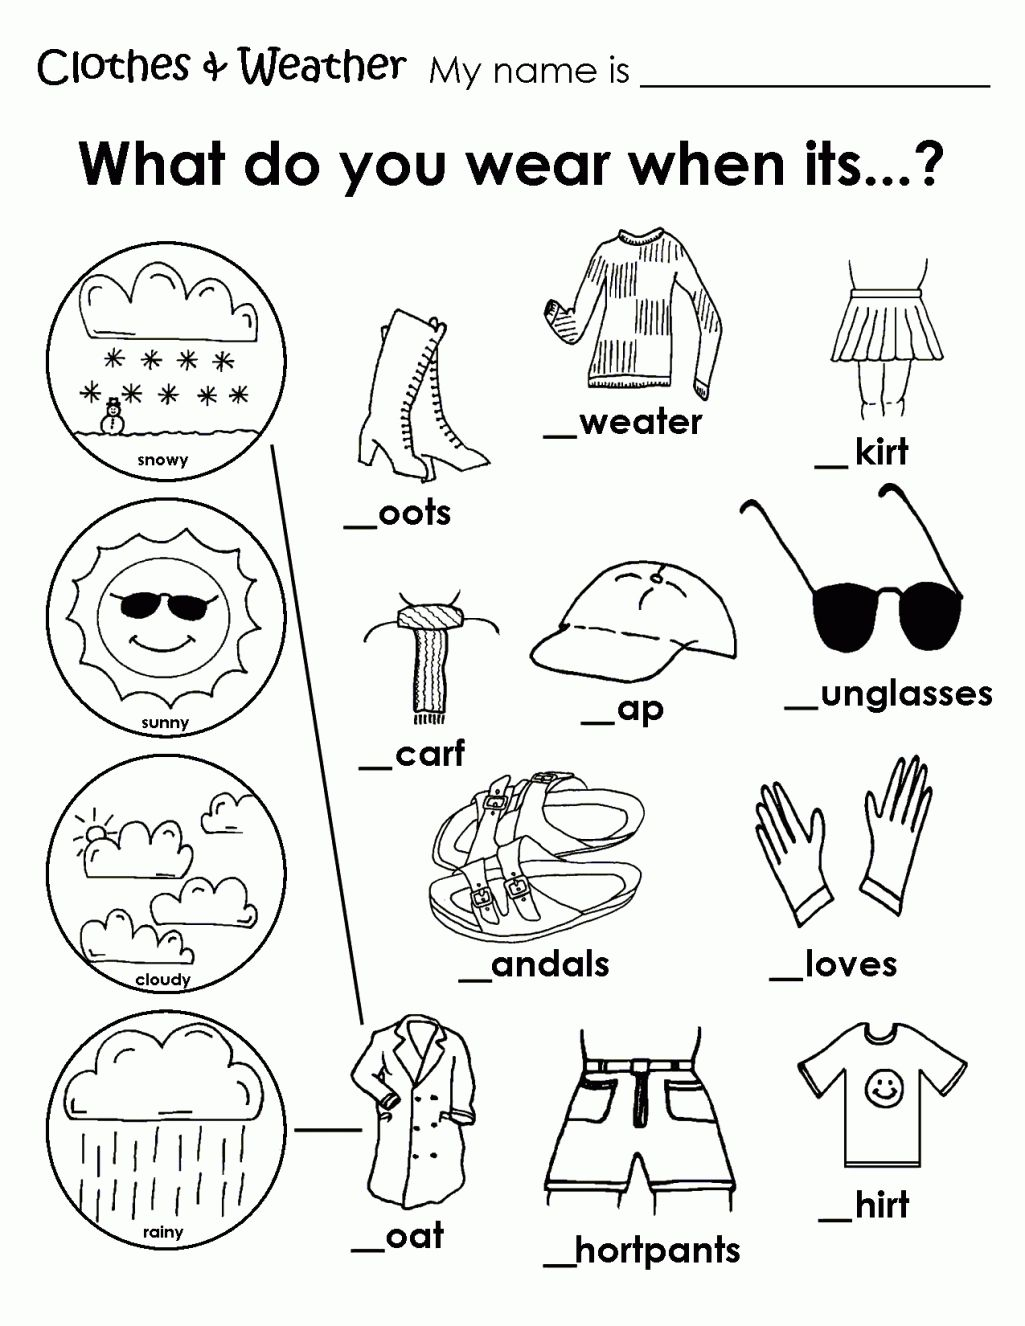 Free Coloring Pages Of Clothing Worksheet Weather Coloring Sheets For Kindergarten Weather